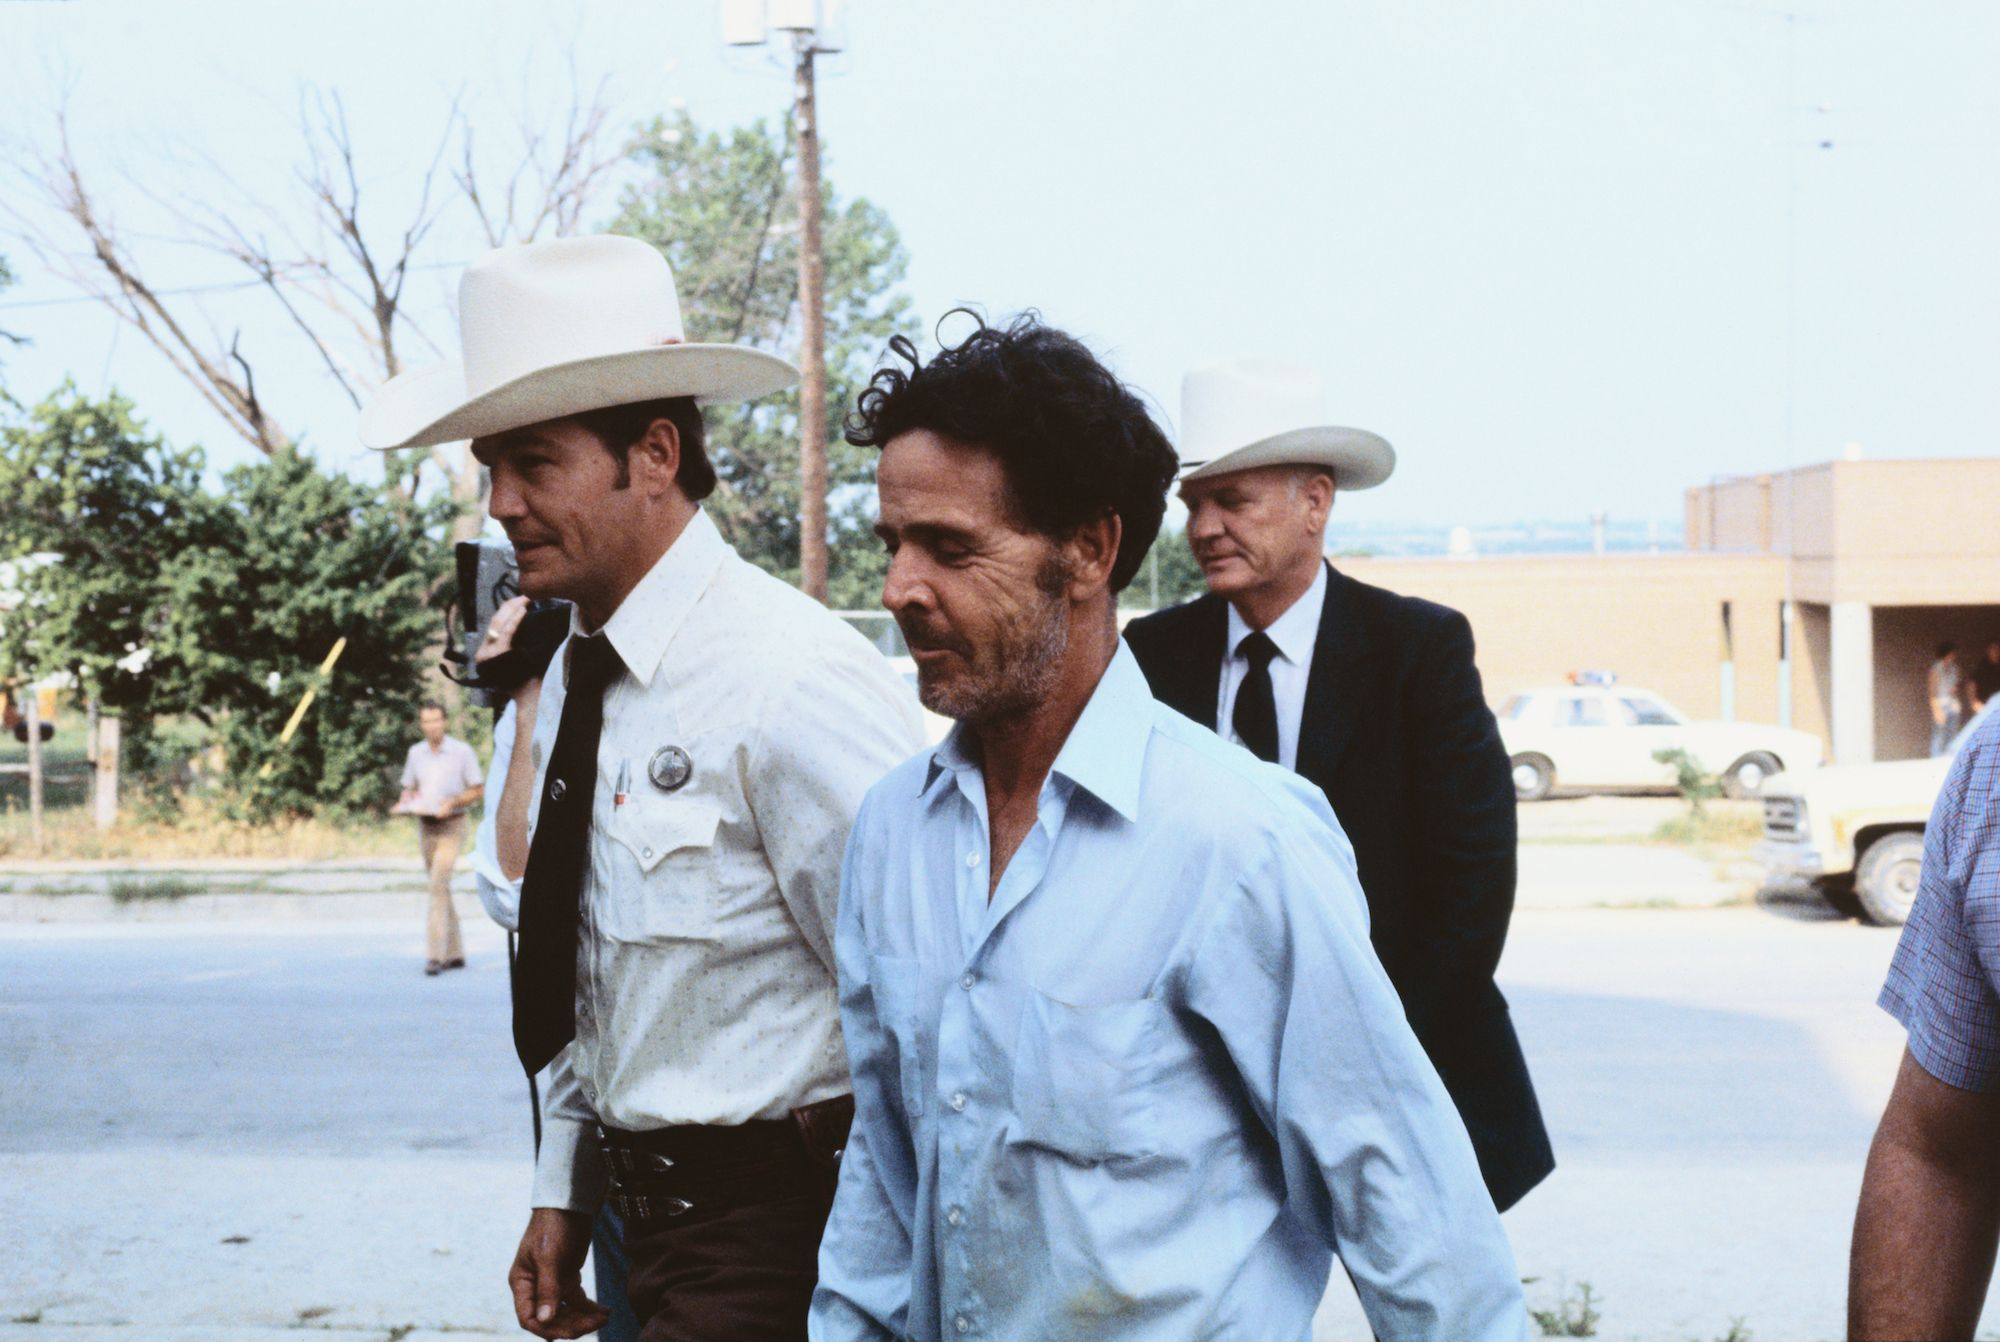 Henry Lee Lucas: The Haunting True Story Behind Netflix's 'The Confession Killer'